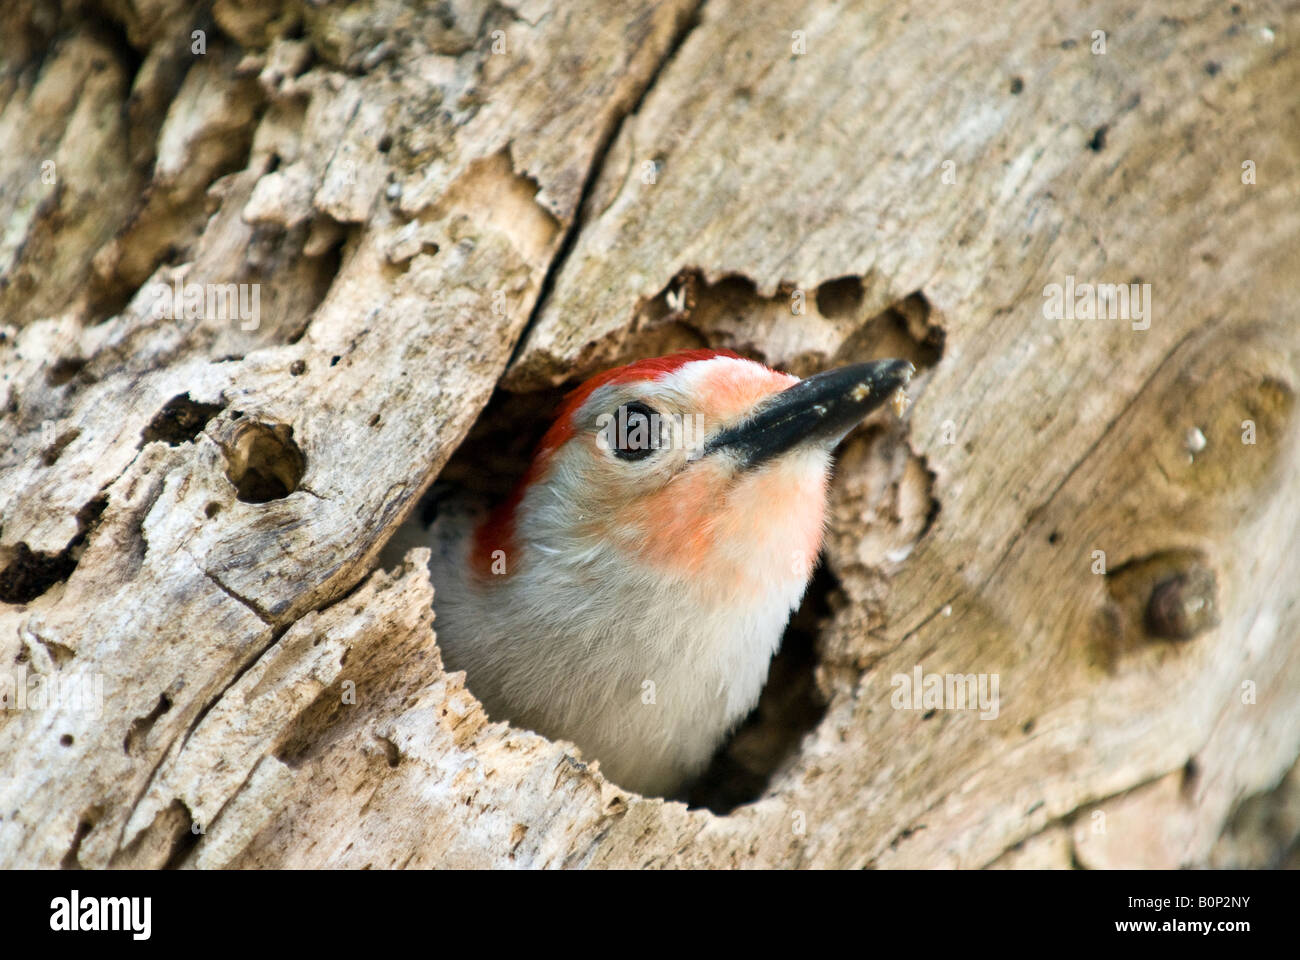 Red-bellied Woodpecker hollows out dead tree trunk for home, Anhinga Trail, Everglades National Park, Florida - Stock Image